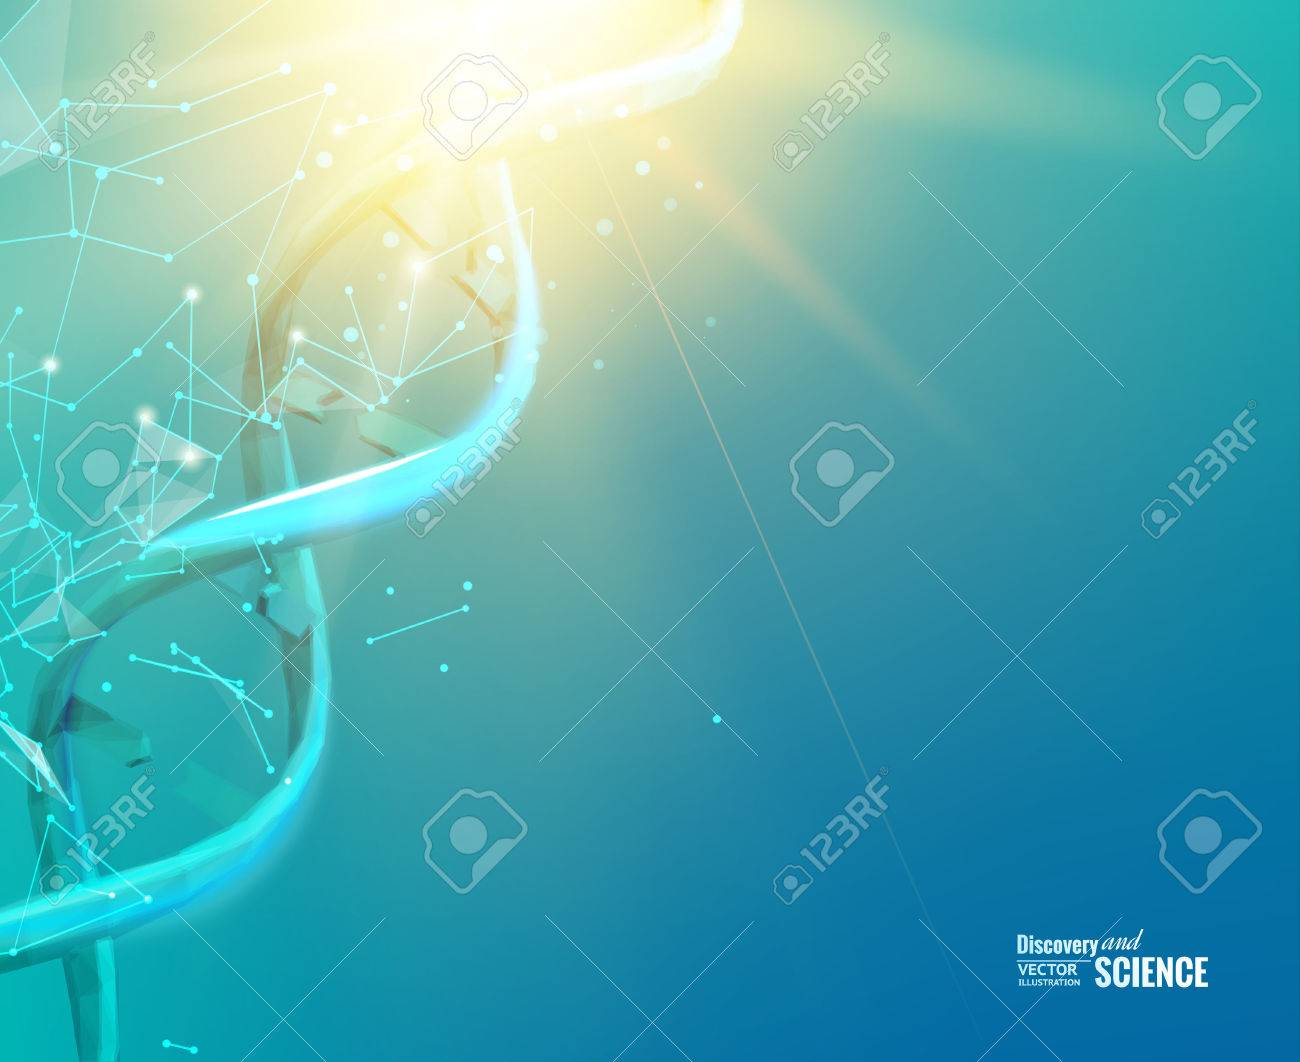 Science concept image of human hand touching DNA. Vector illustration. - 51374977